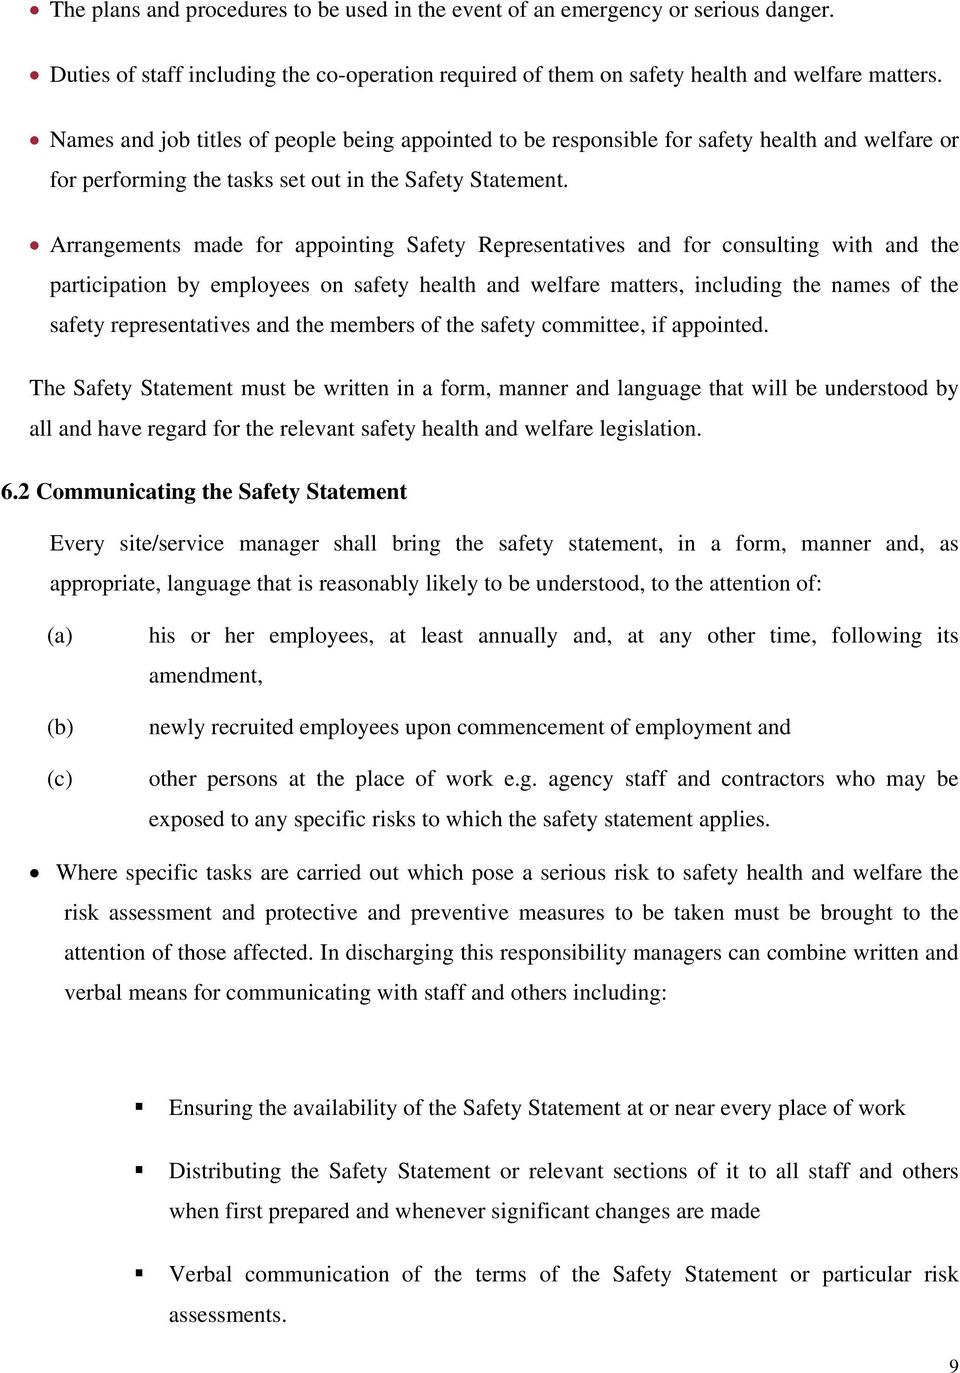 Arrangements made for appointing Safety Representatives and for consulting with and the participation by employees on safety health and welfare matters, including the names of the safety